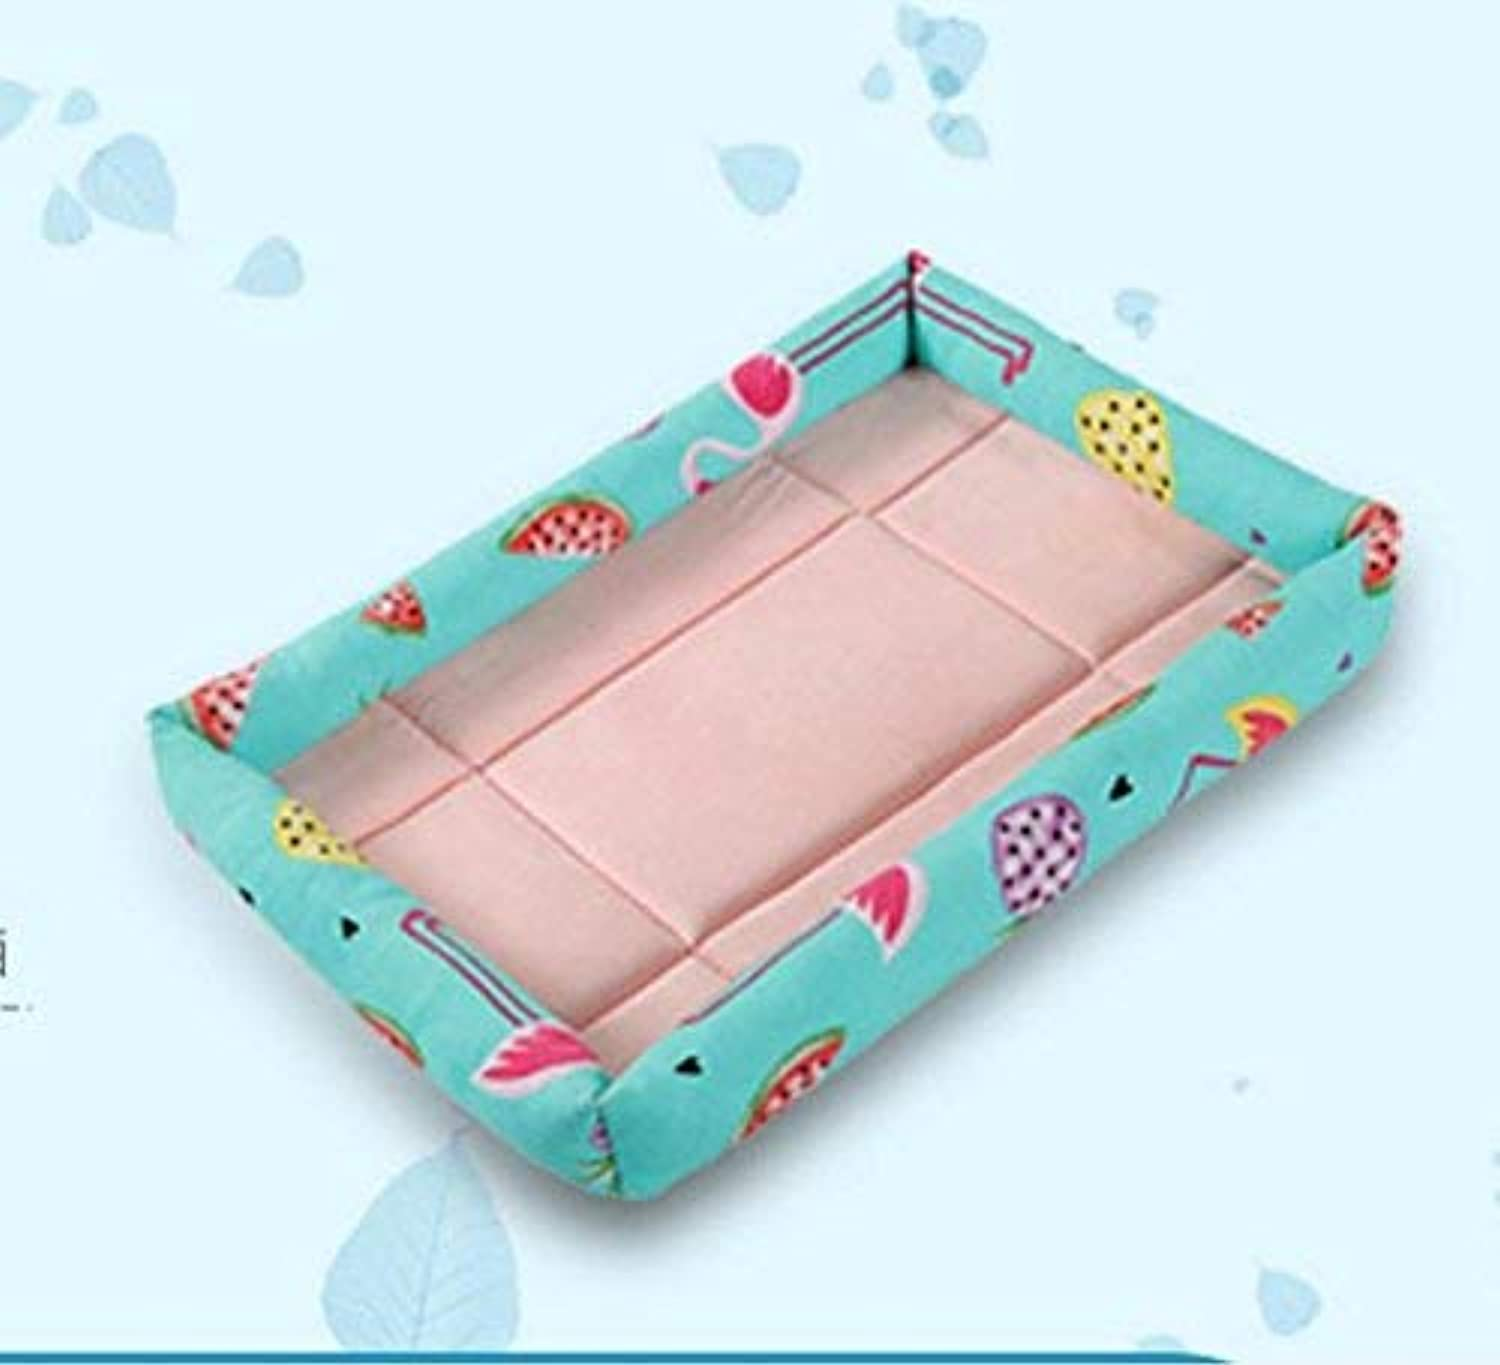 YQSMYSW Puppy Dog Summer Bed Self Cooling Pad Pet Cooler Cold Bed Pet Cooling Mat(Flamingo Light bluee,M) for Cat Dog